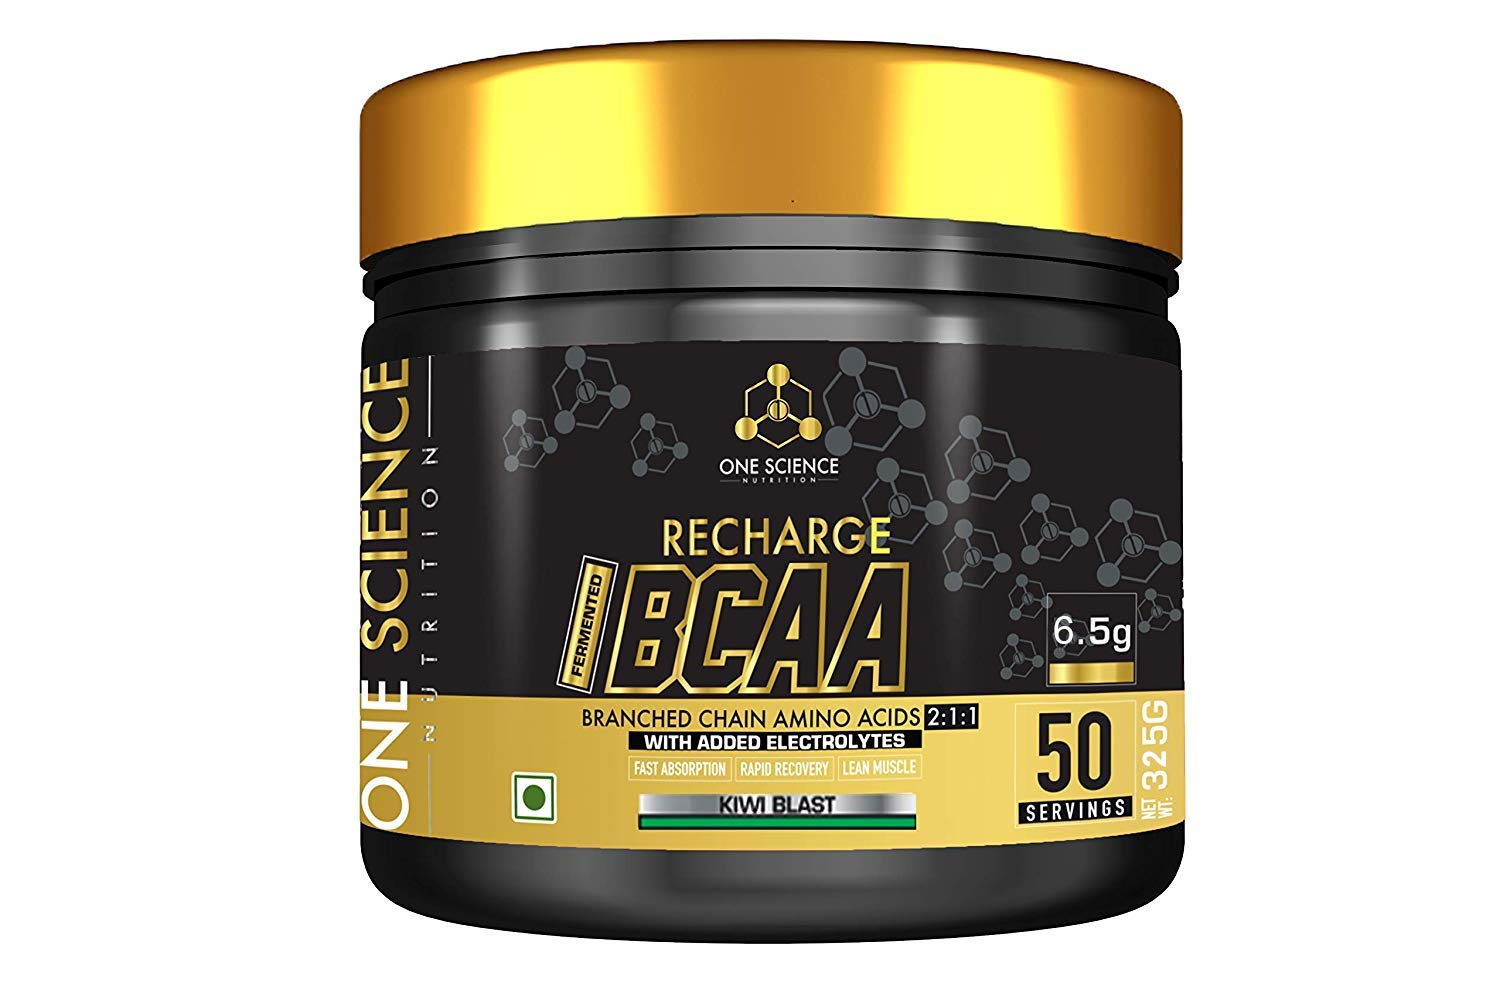 One Science Recharge BCAA 2:1:1, 0.72 lb, 50 Servings